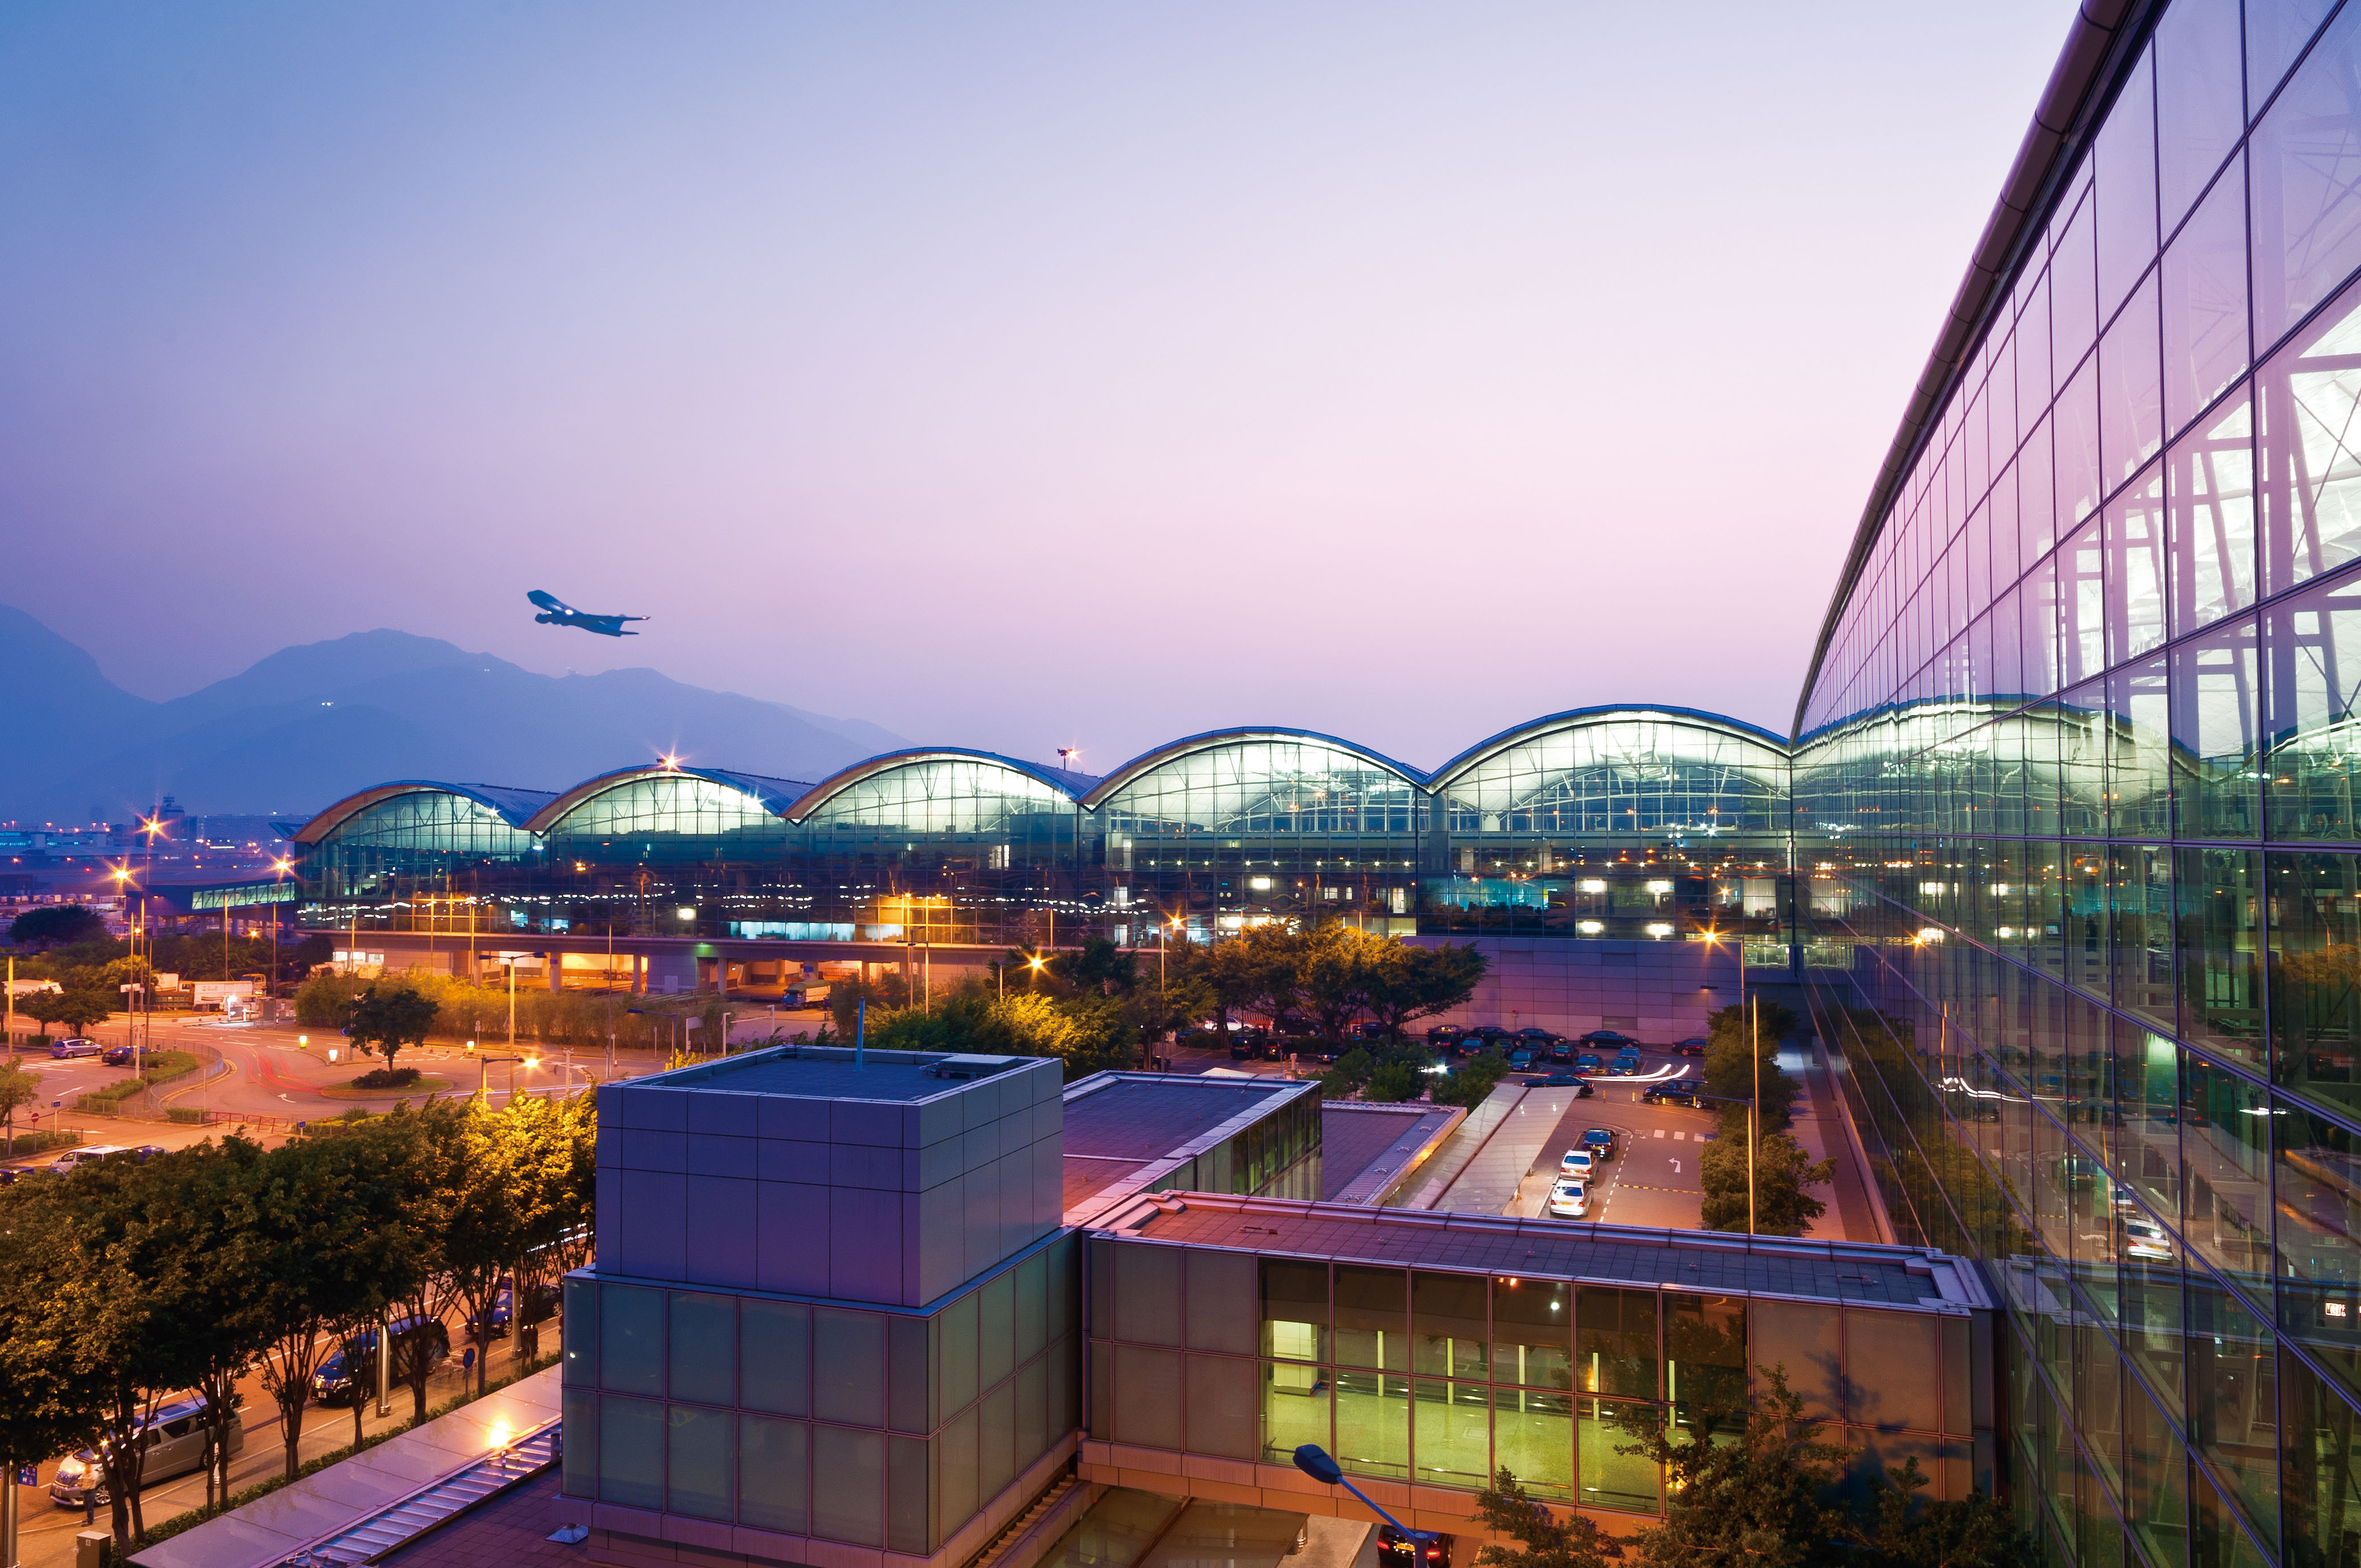 hong kong international airport If you feel unwell or need medical assistance while at the hong kong  international airport, our airport centre offers general medical, occupational &  travel.